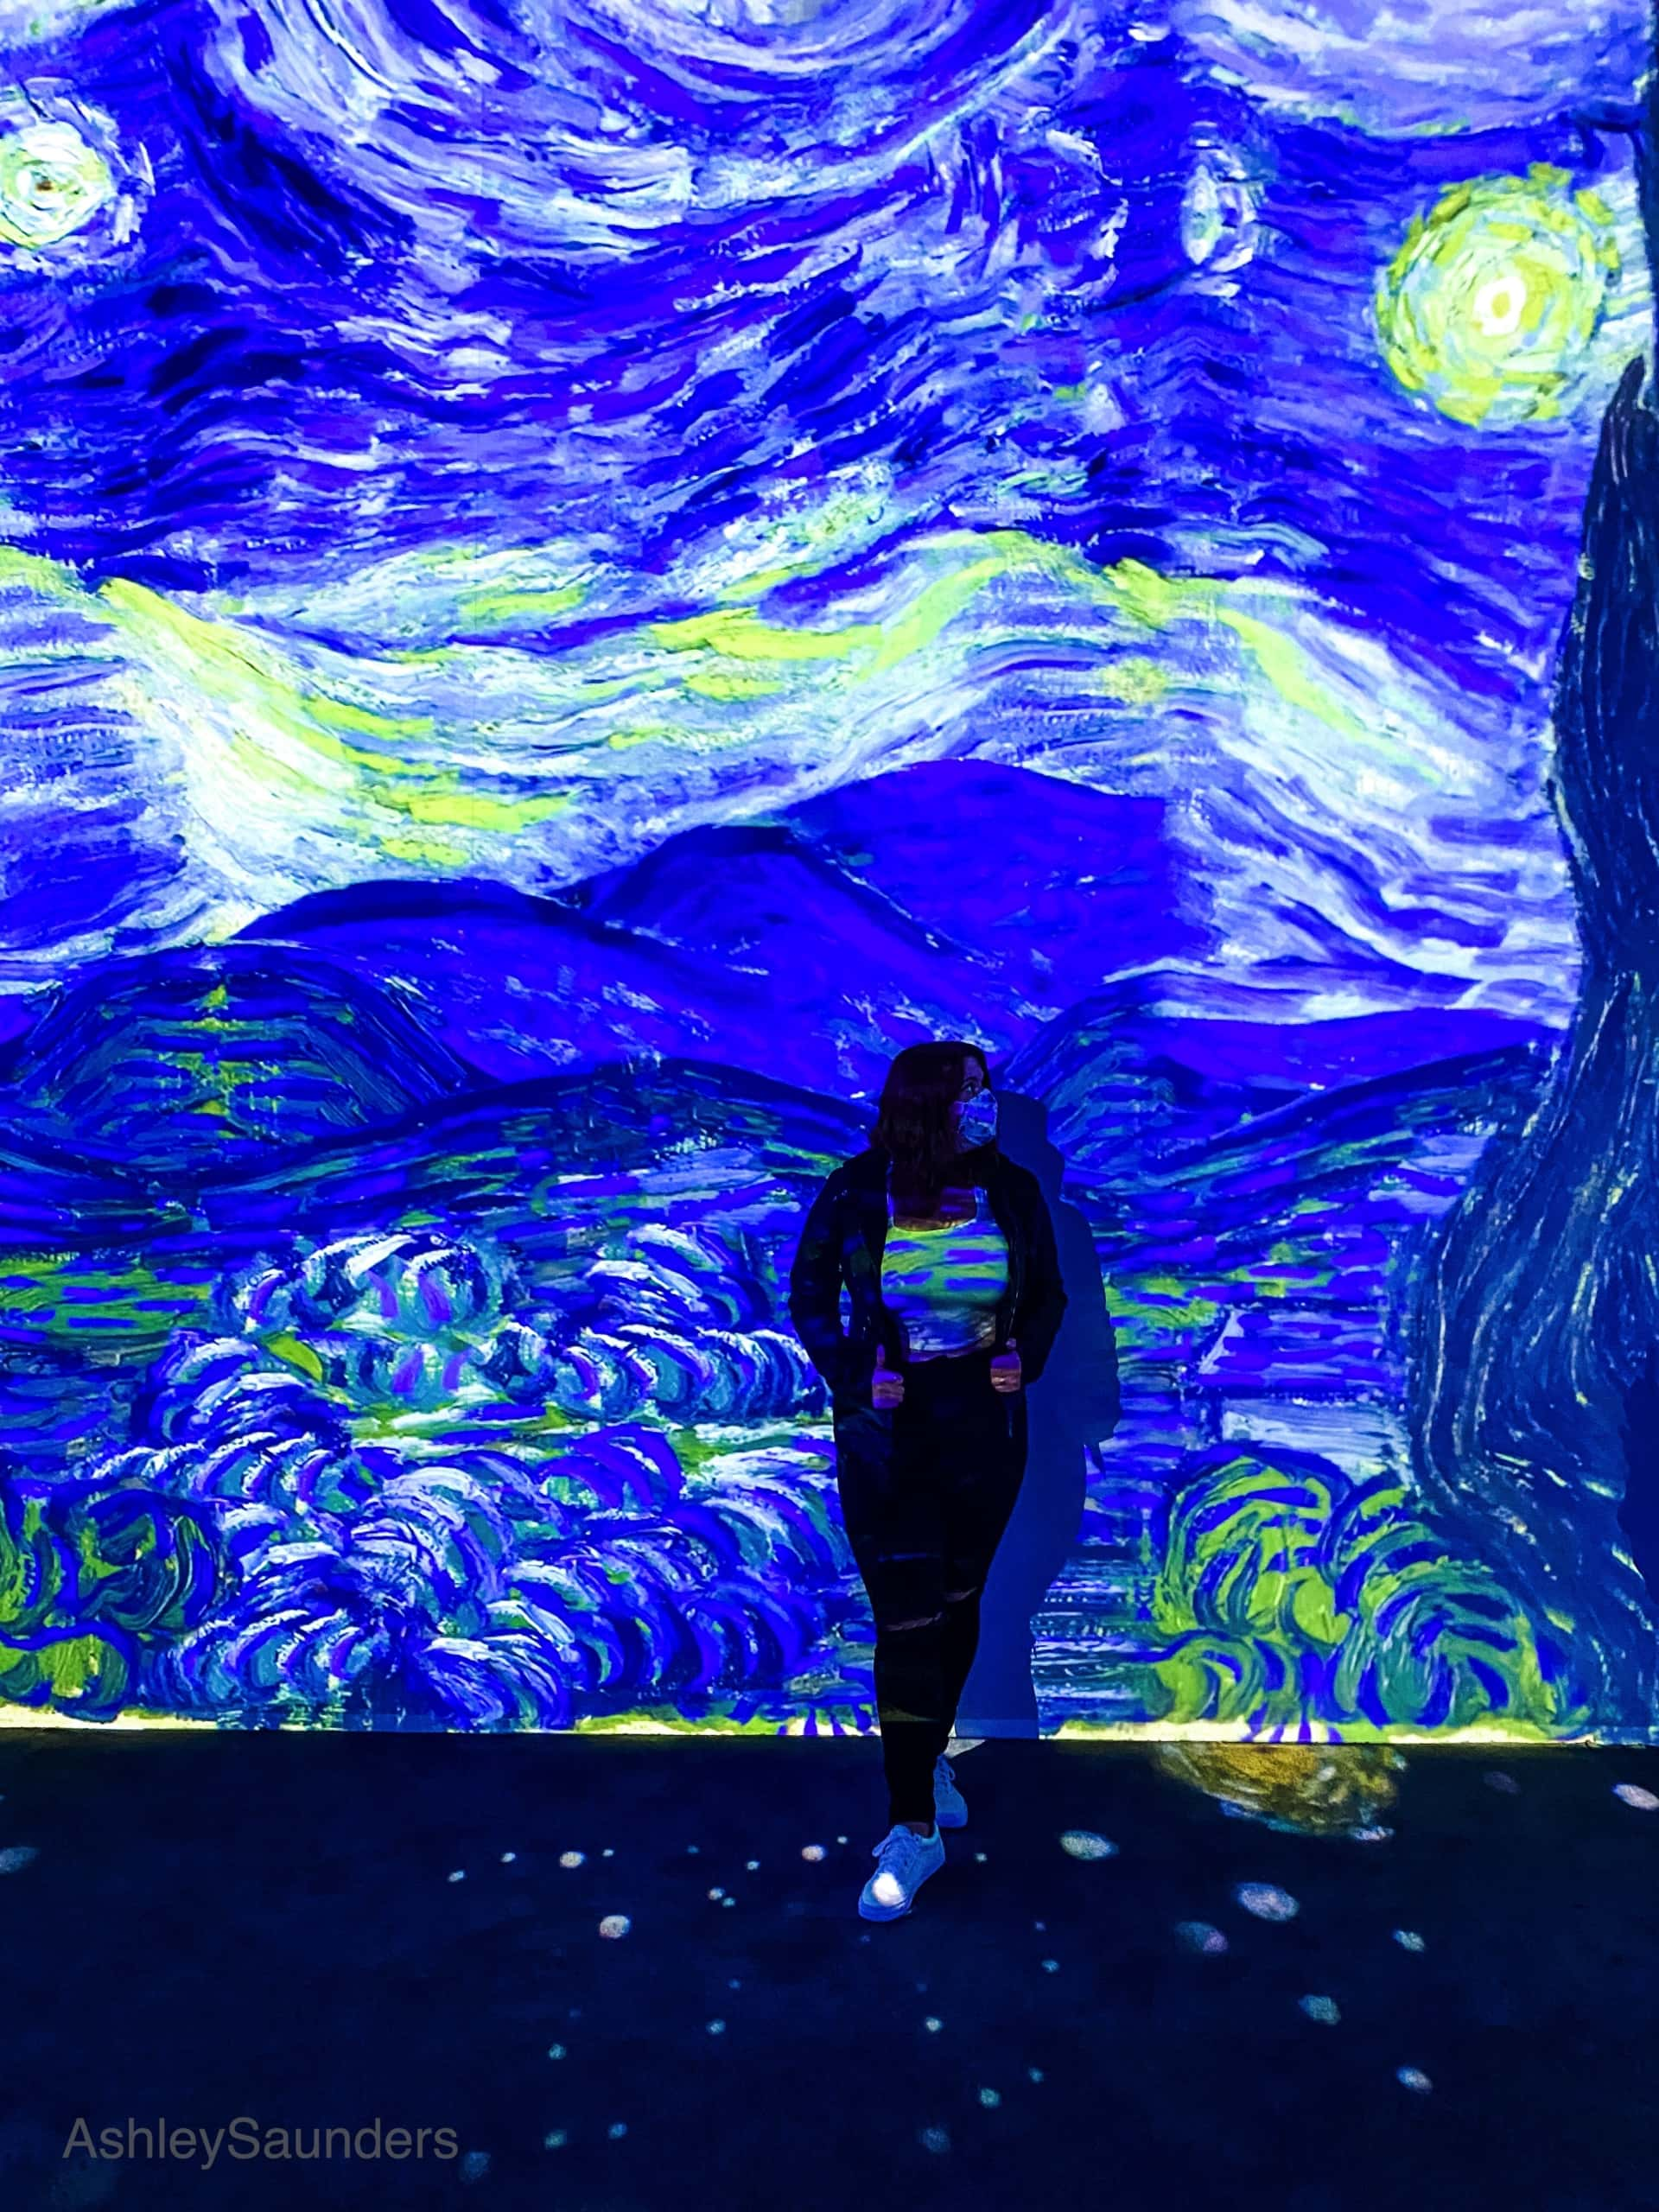 Van Gogh The Immersive Experience Review starry night